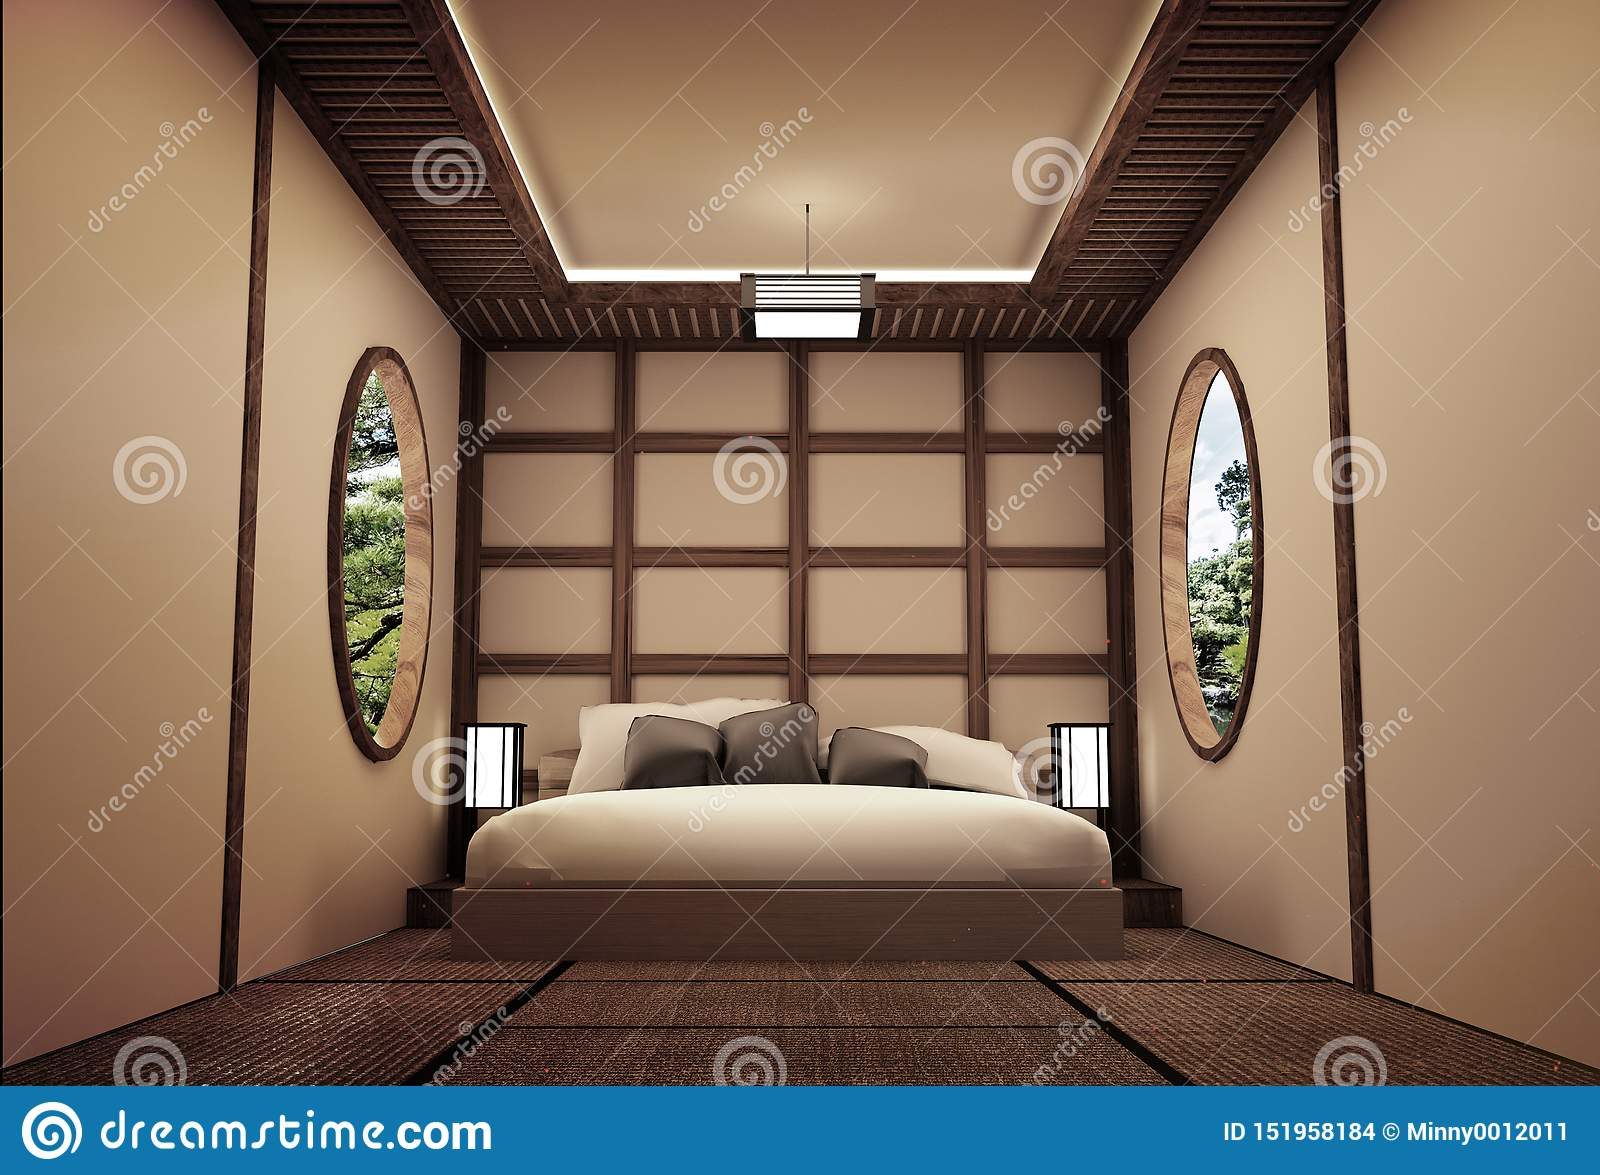 Traditional Japanese Style Bedroom Interior Design 3d Rendering Stock Illustration Illustration Of Home Japan 151958184